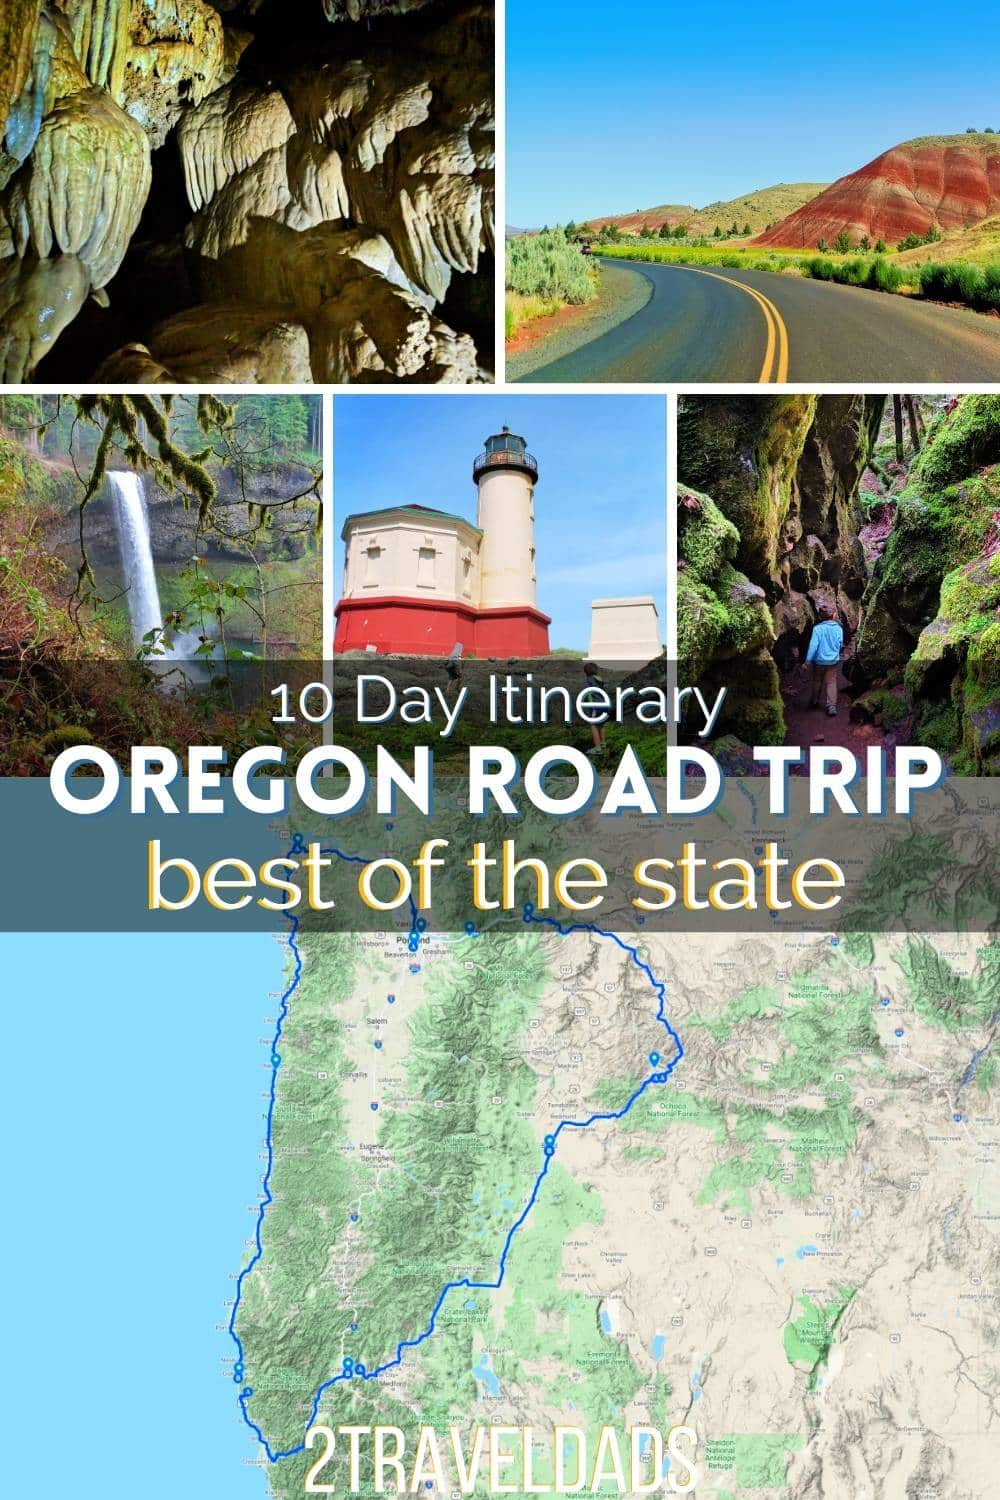 10 Road Trip plan for the best of Oregon, from the rugged Oregon Coast to the mountain waterfalls and the colorful high desert. Oregon's best sights in 10 days of epic road trip.